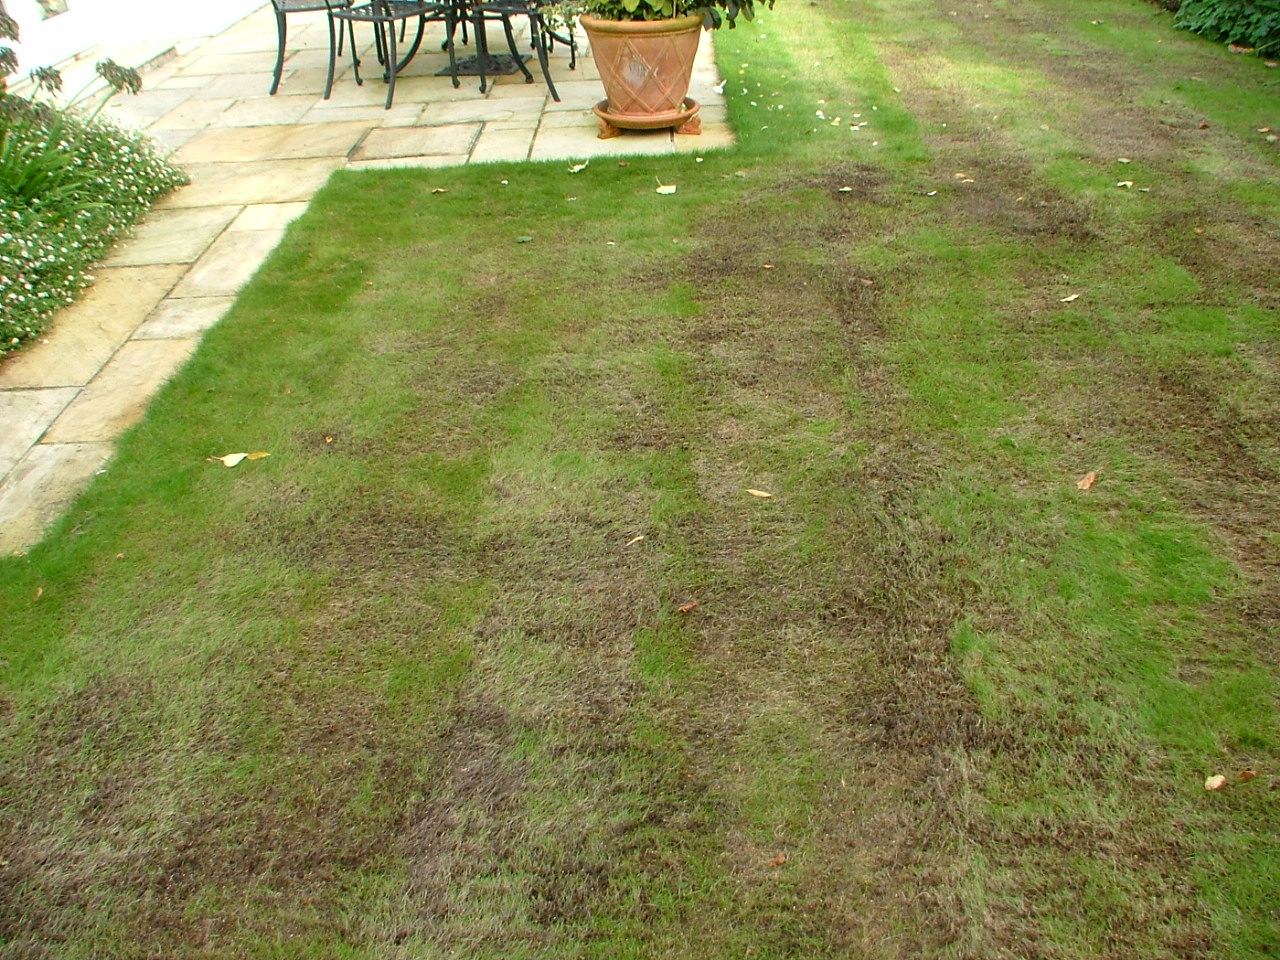 Greenthumb aylesbury your local lawn care service for Local lawn care services